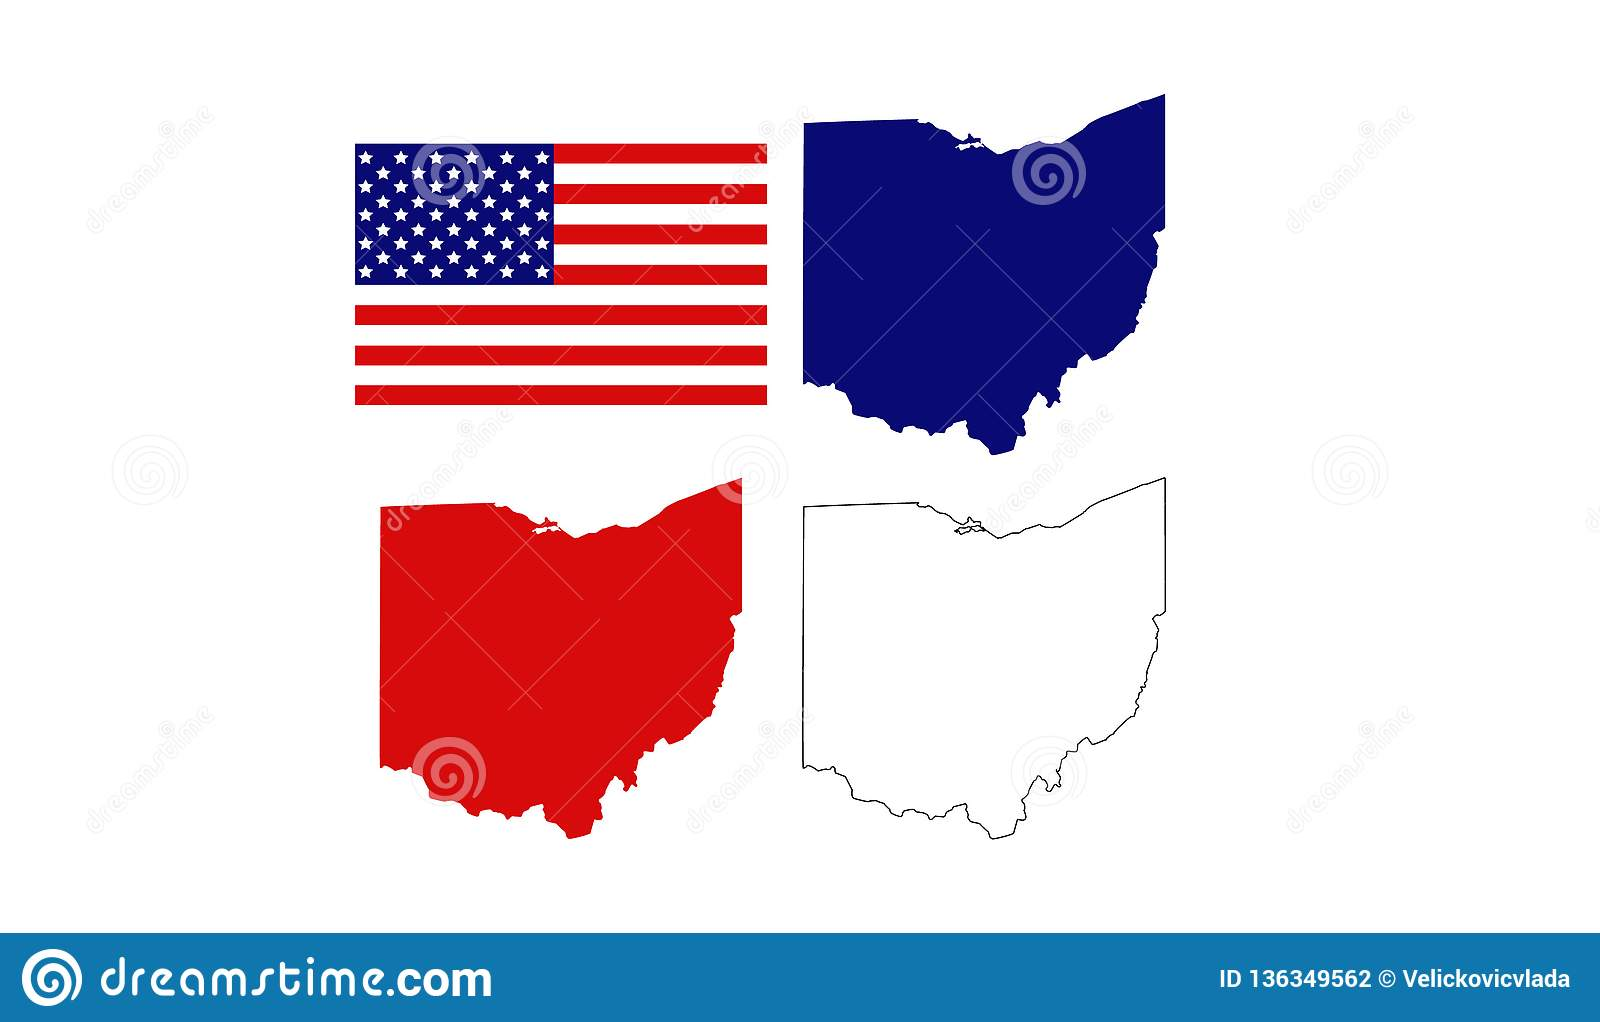 Ohio Maps With USA Flag - Midwestern State In The Great Lakes Region ...